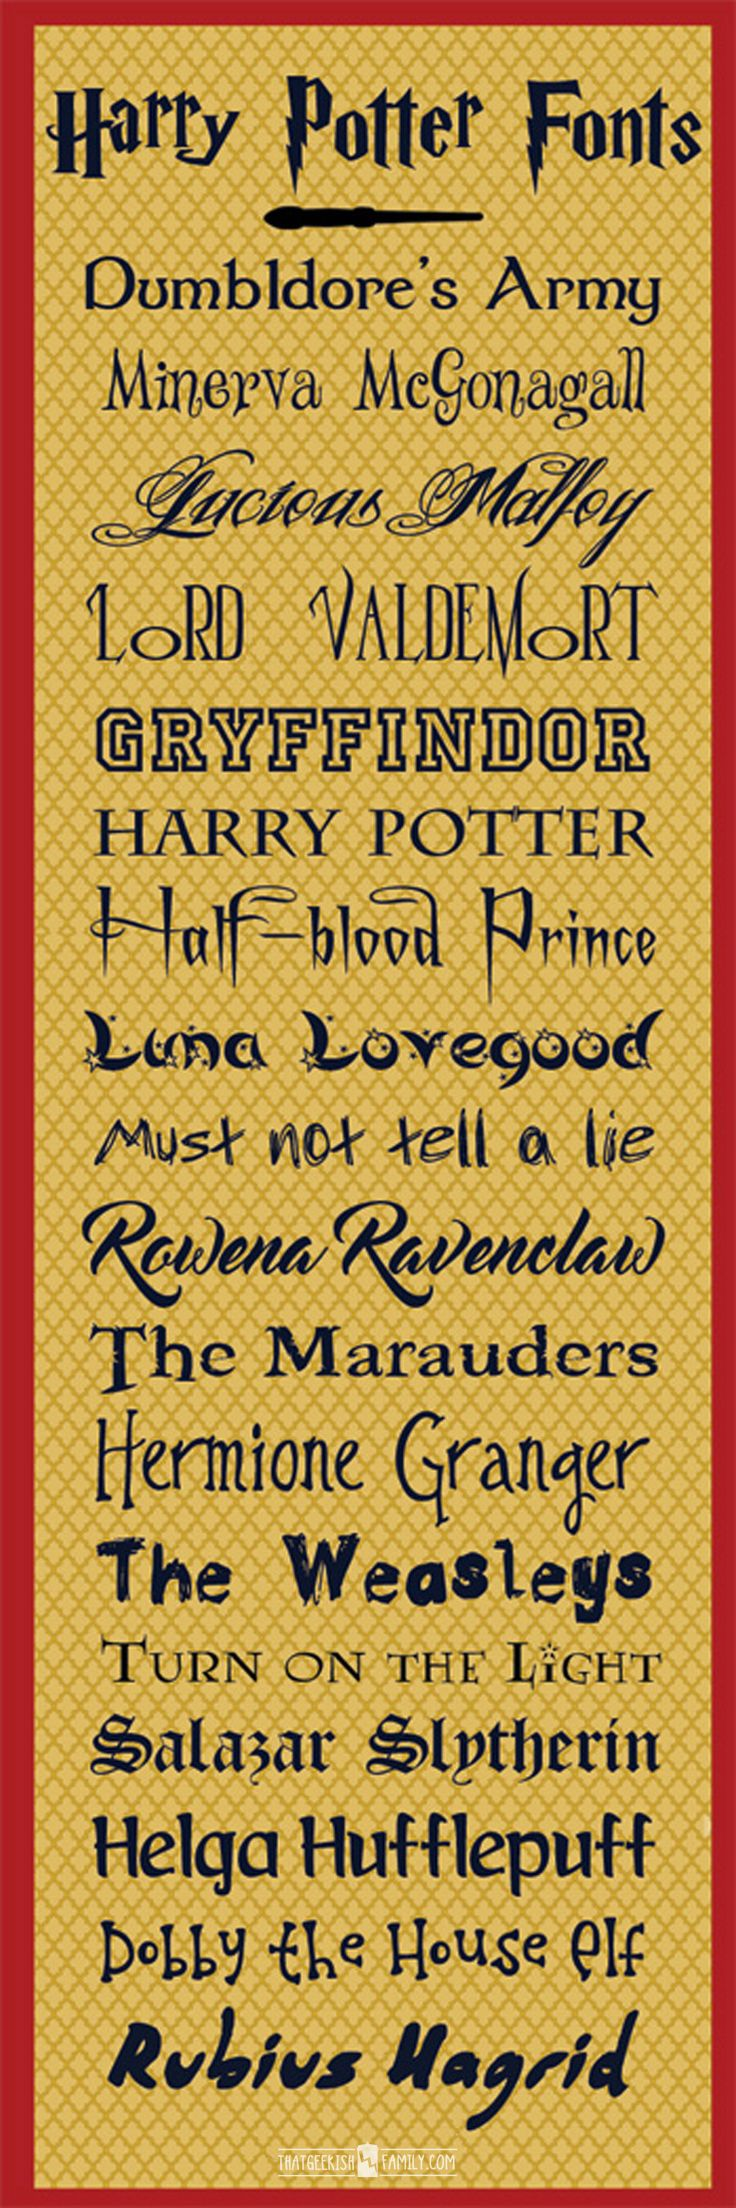 Look at all the great Harry Potter inspired free fonts! Perfect for our birthday party invites and scrapbook pages! Find them at ThatGeekishFamily.com